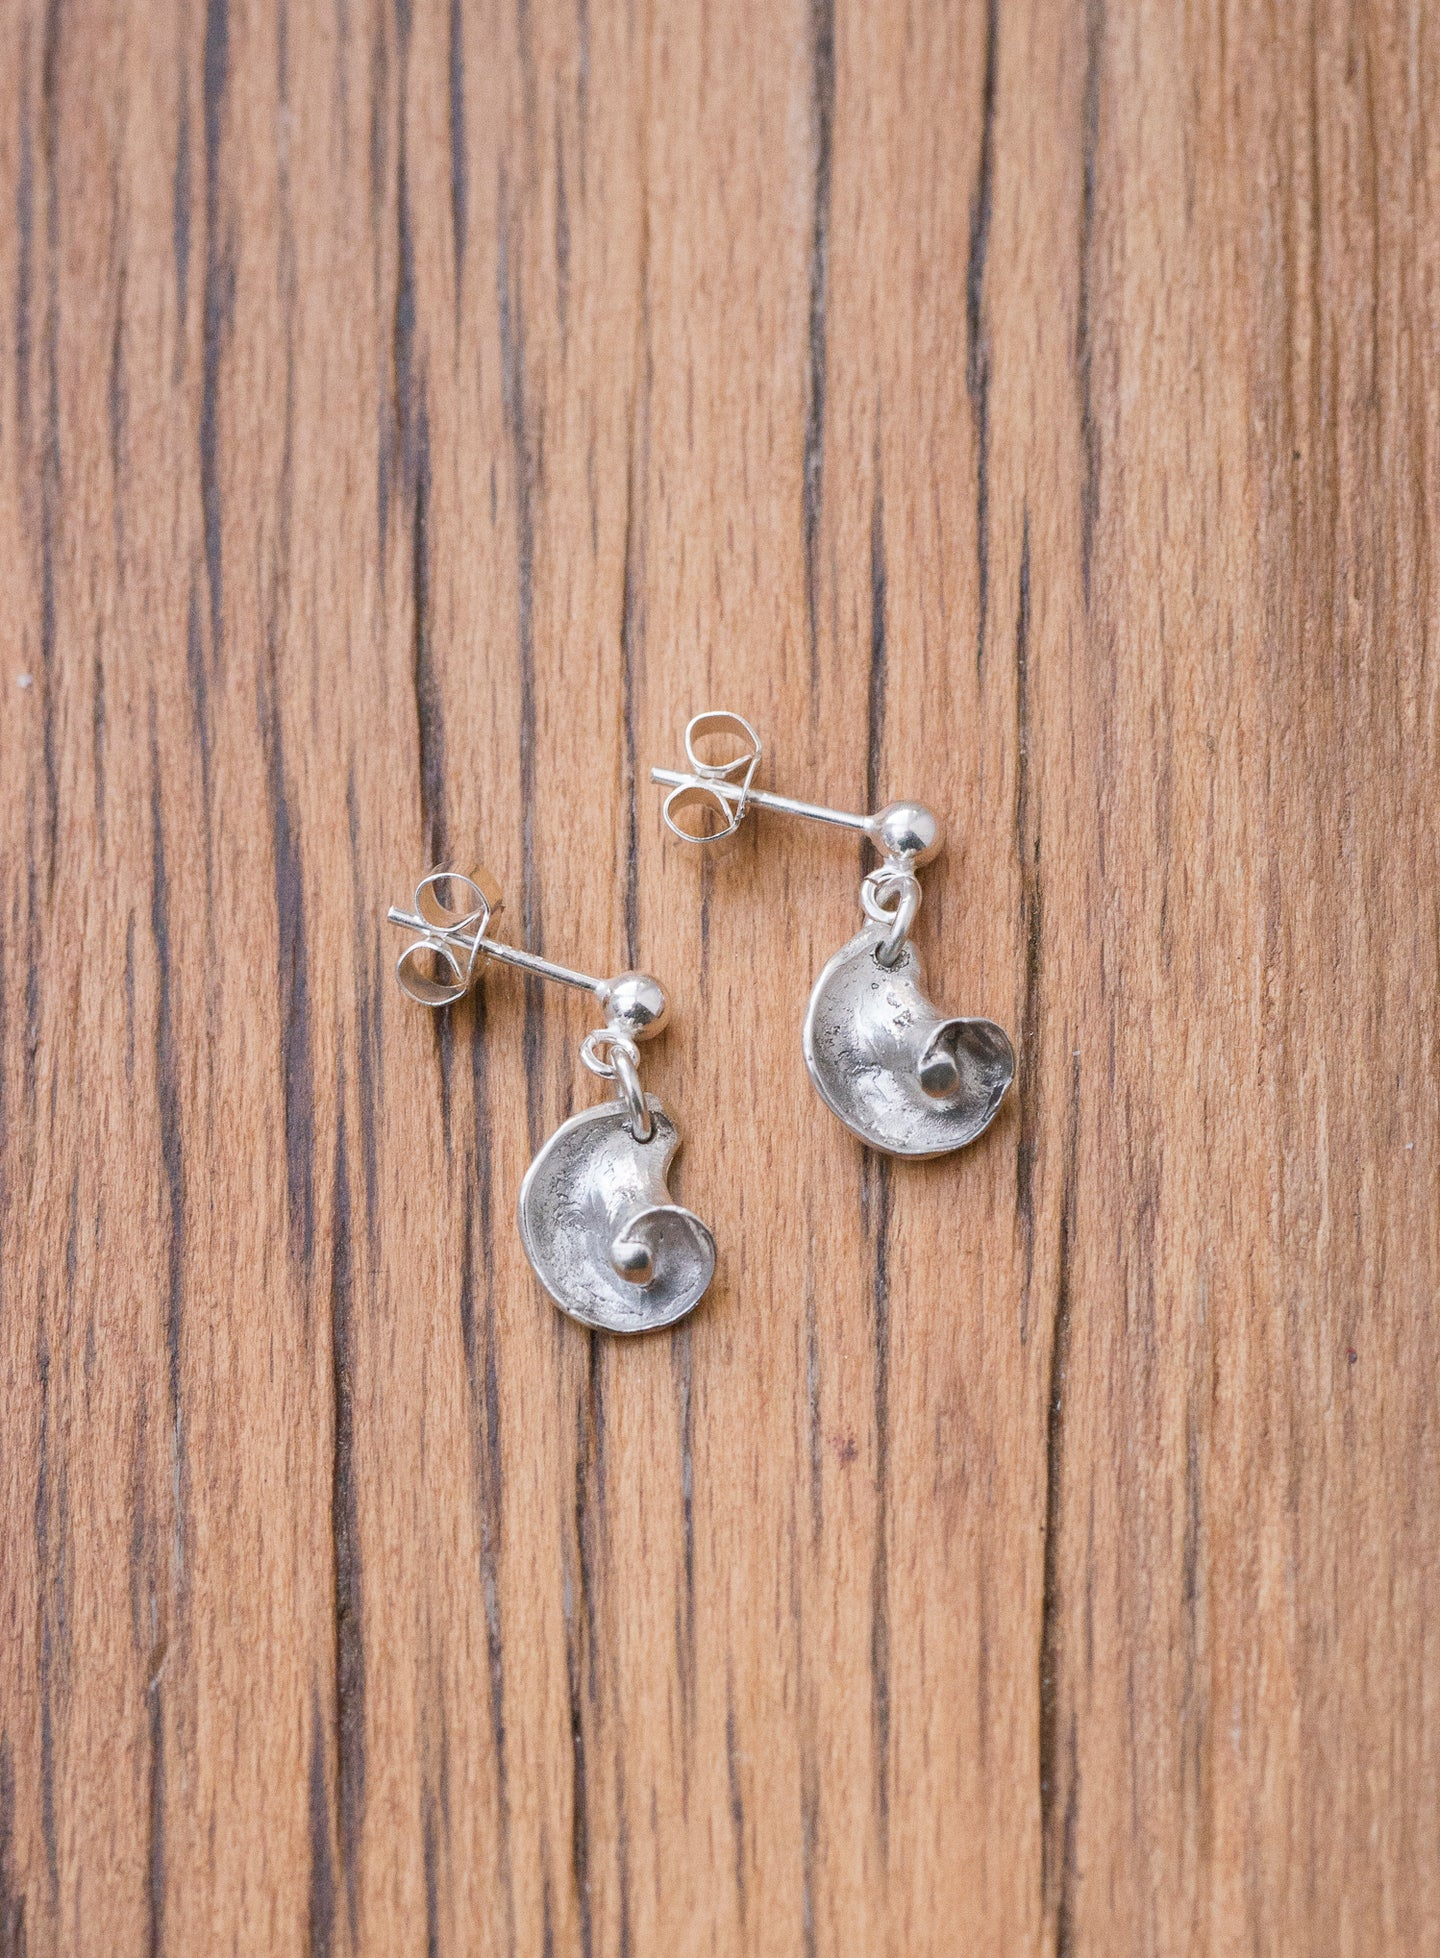 A pair of sterling silver and fine silver earrings in the shape of shells. The shells are dangling from a ball stud, and are set against a wooden background.